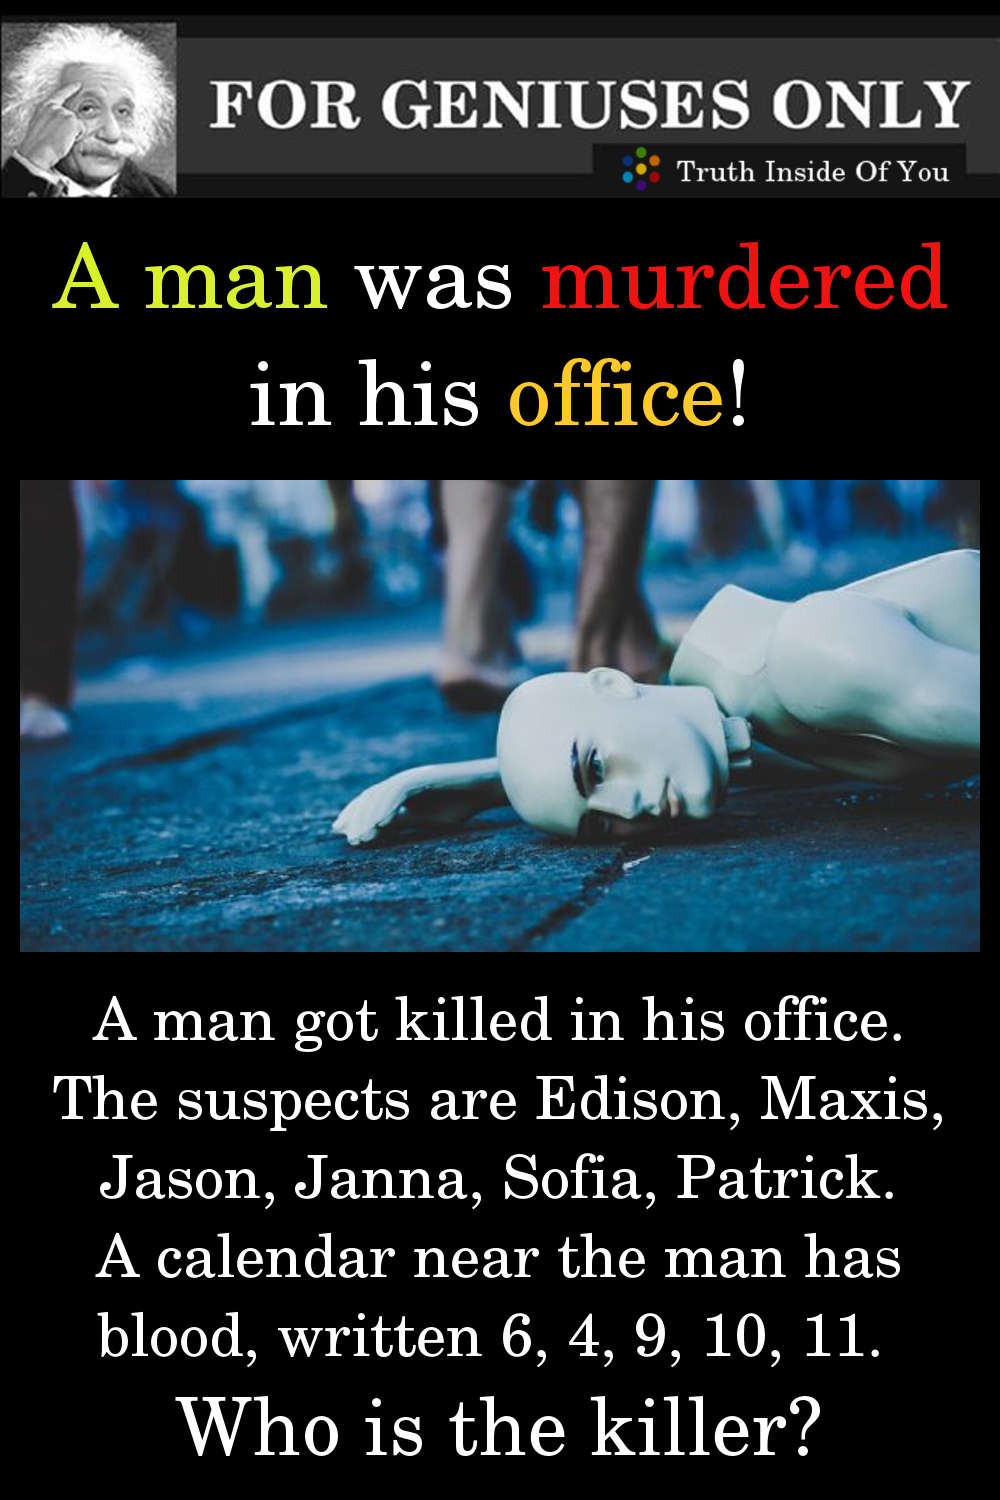 A man got killed in his office. featured